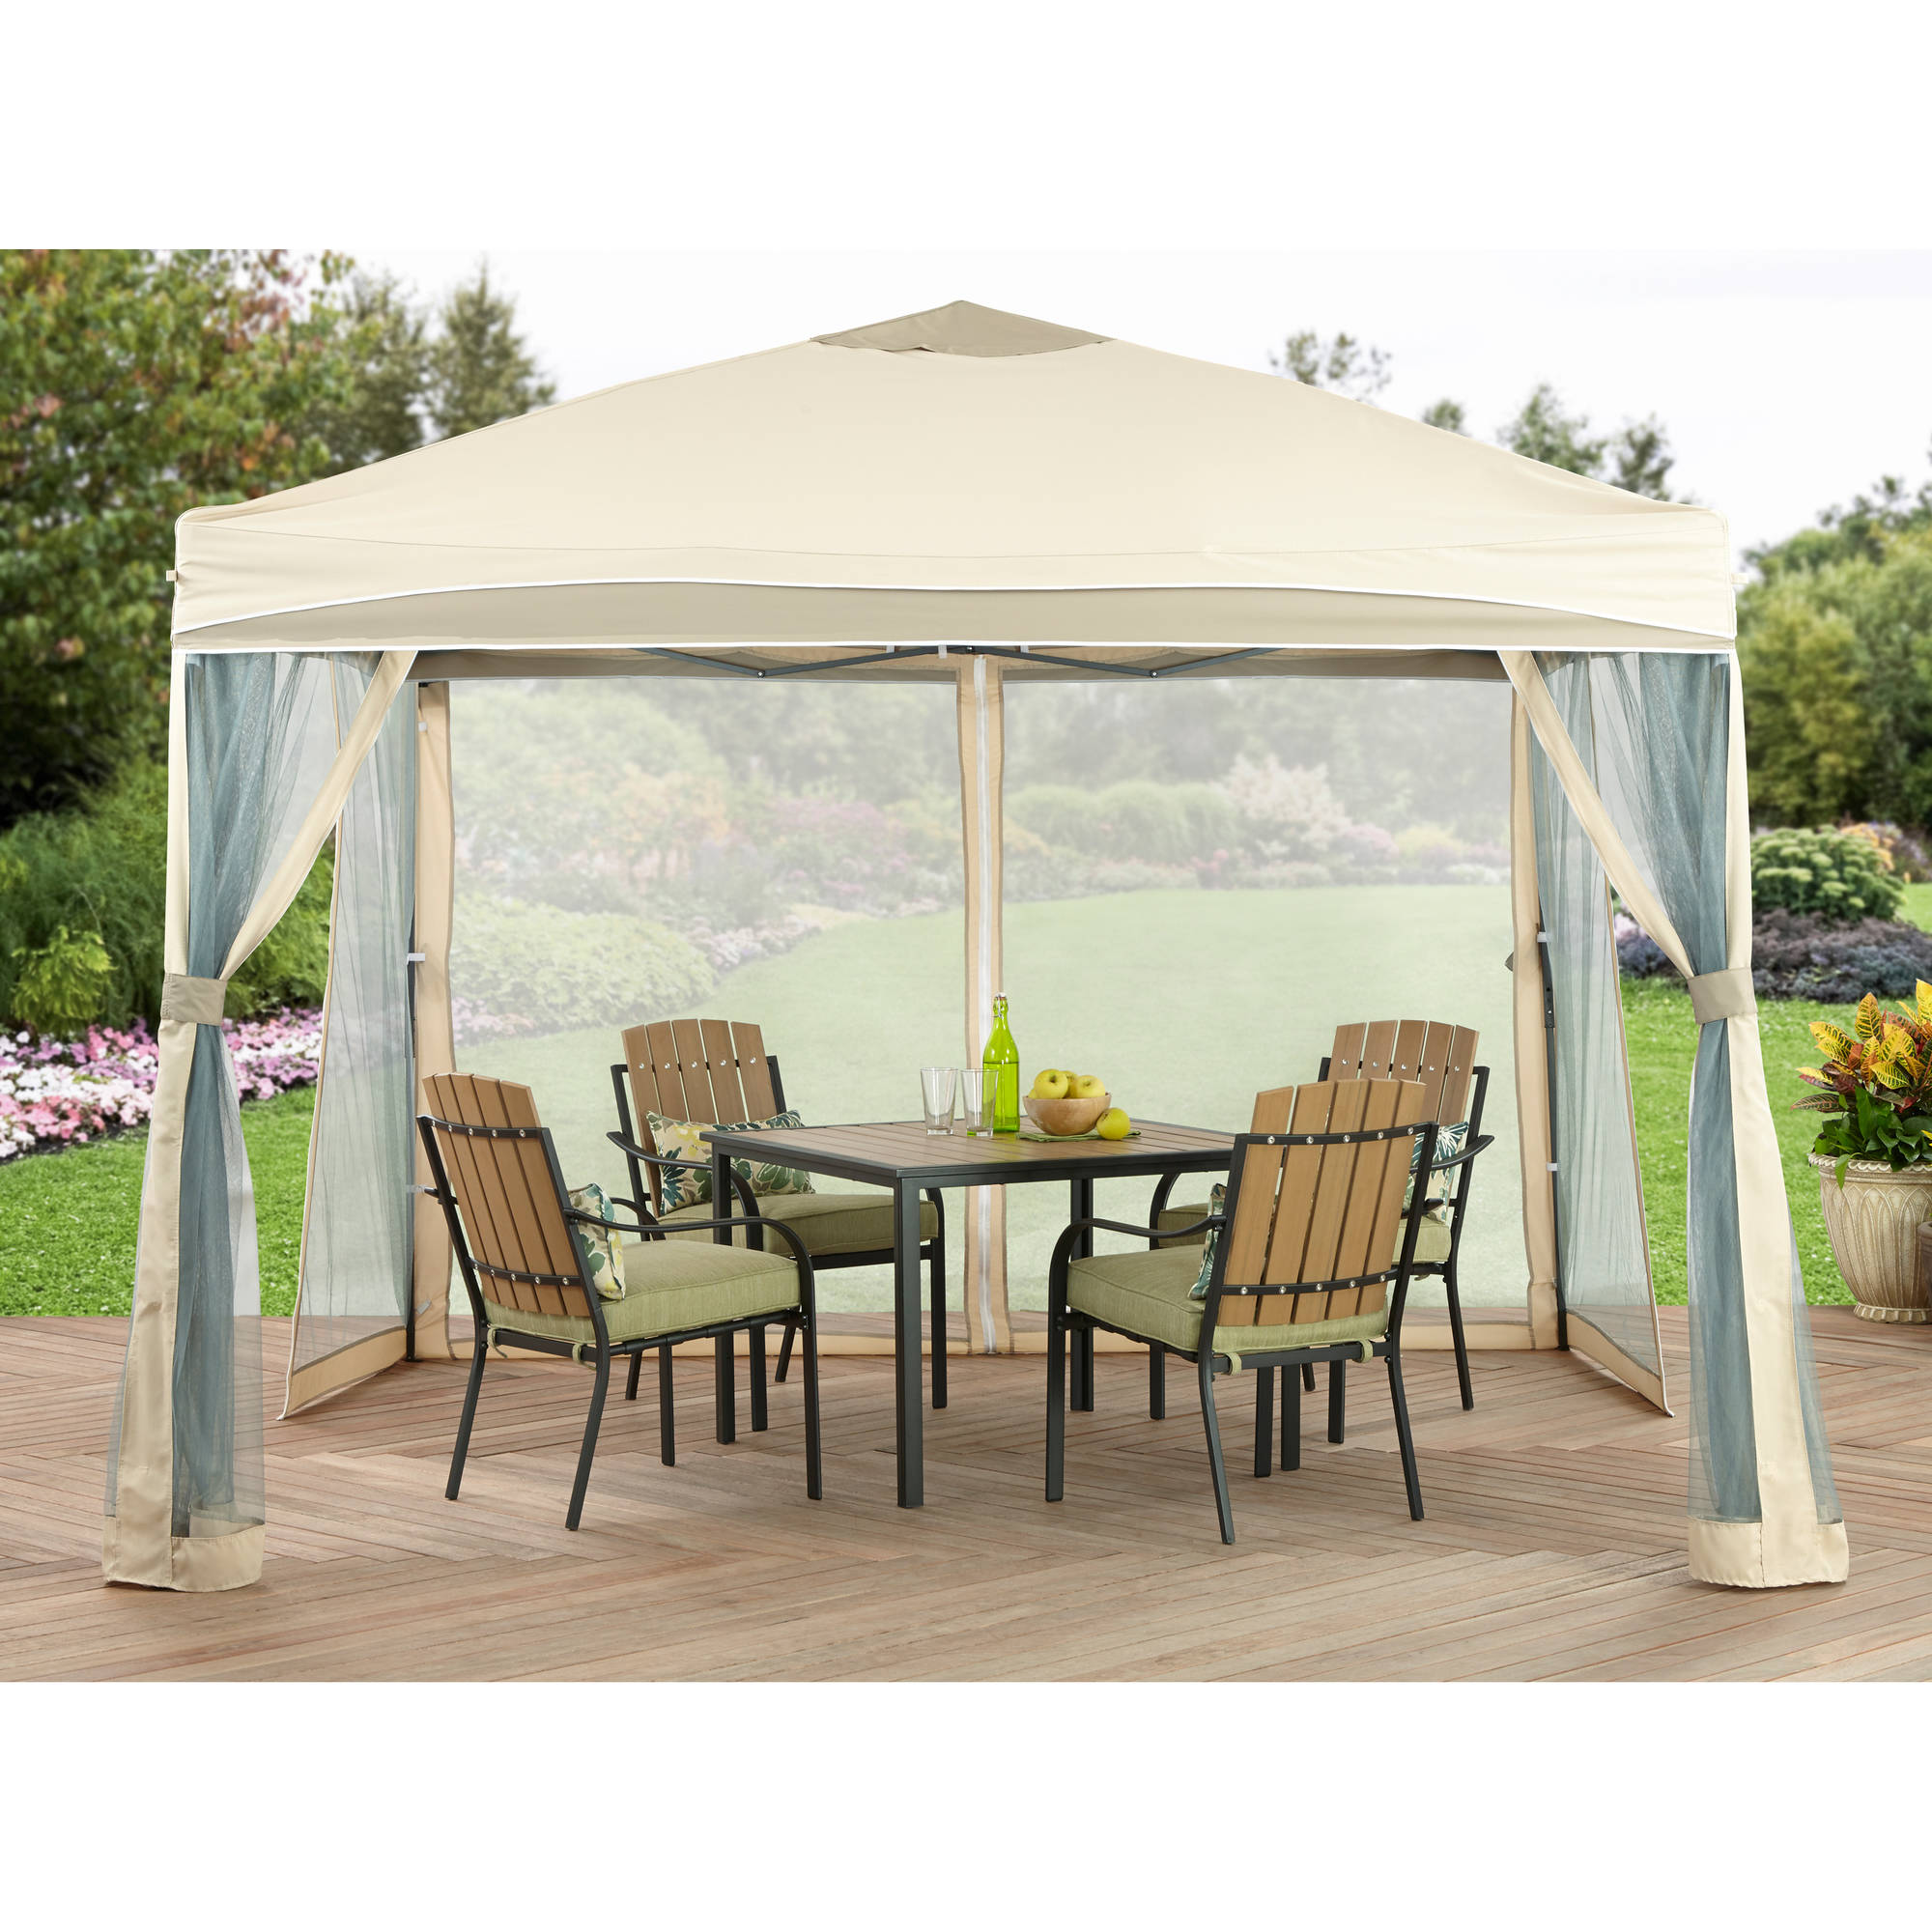 Attirant PALM SPRINGS 10u0027 X 30u0027 Party Tent Wedding Canopy Gazebo Pavilion W/Side  Walls   Walmart.com